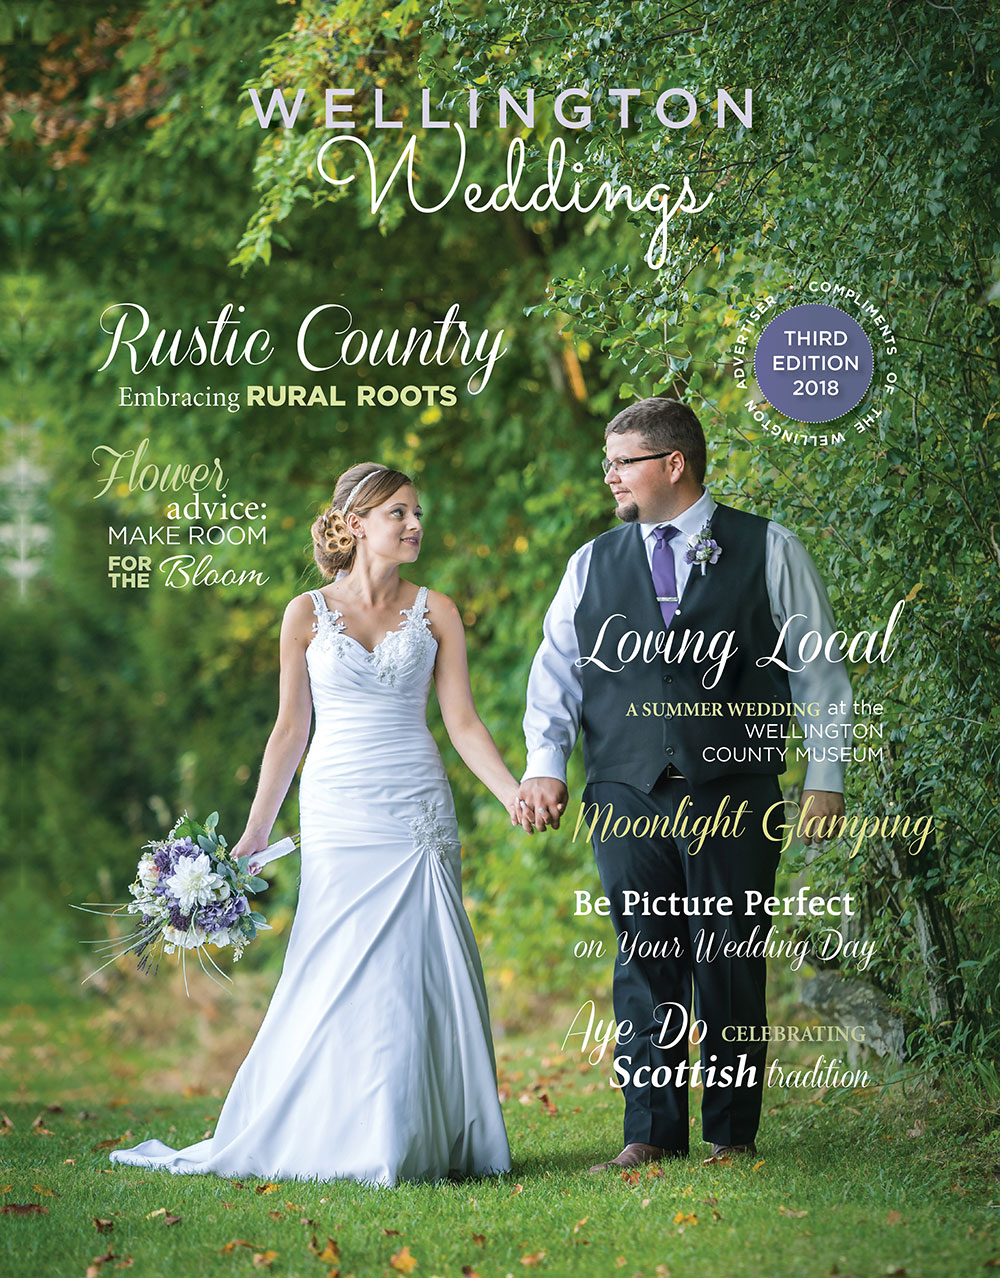 wellington weddings 2018 magazine cover image